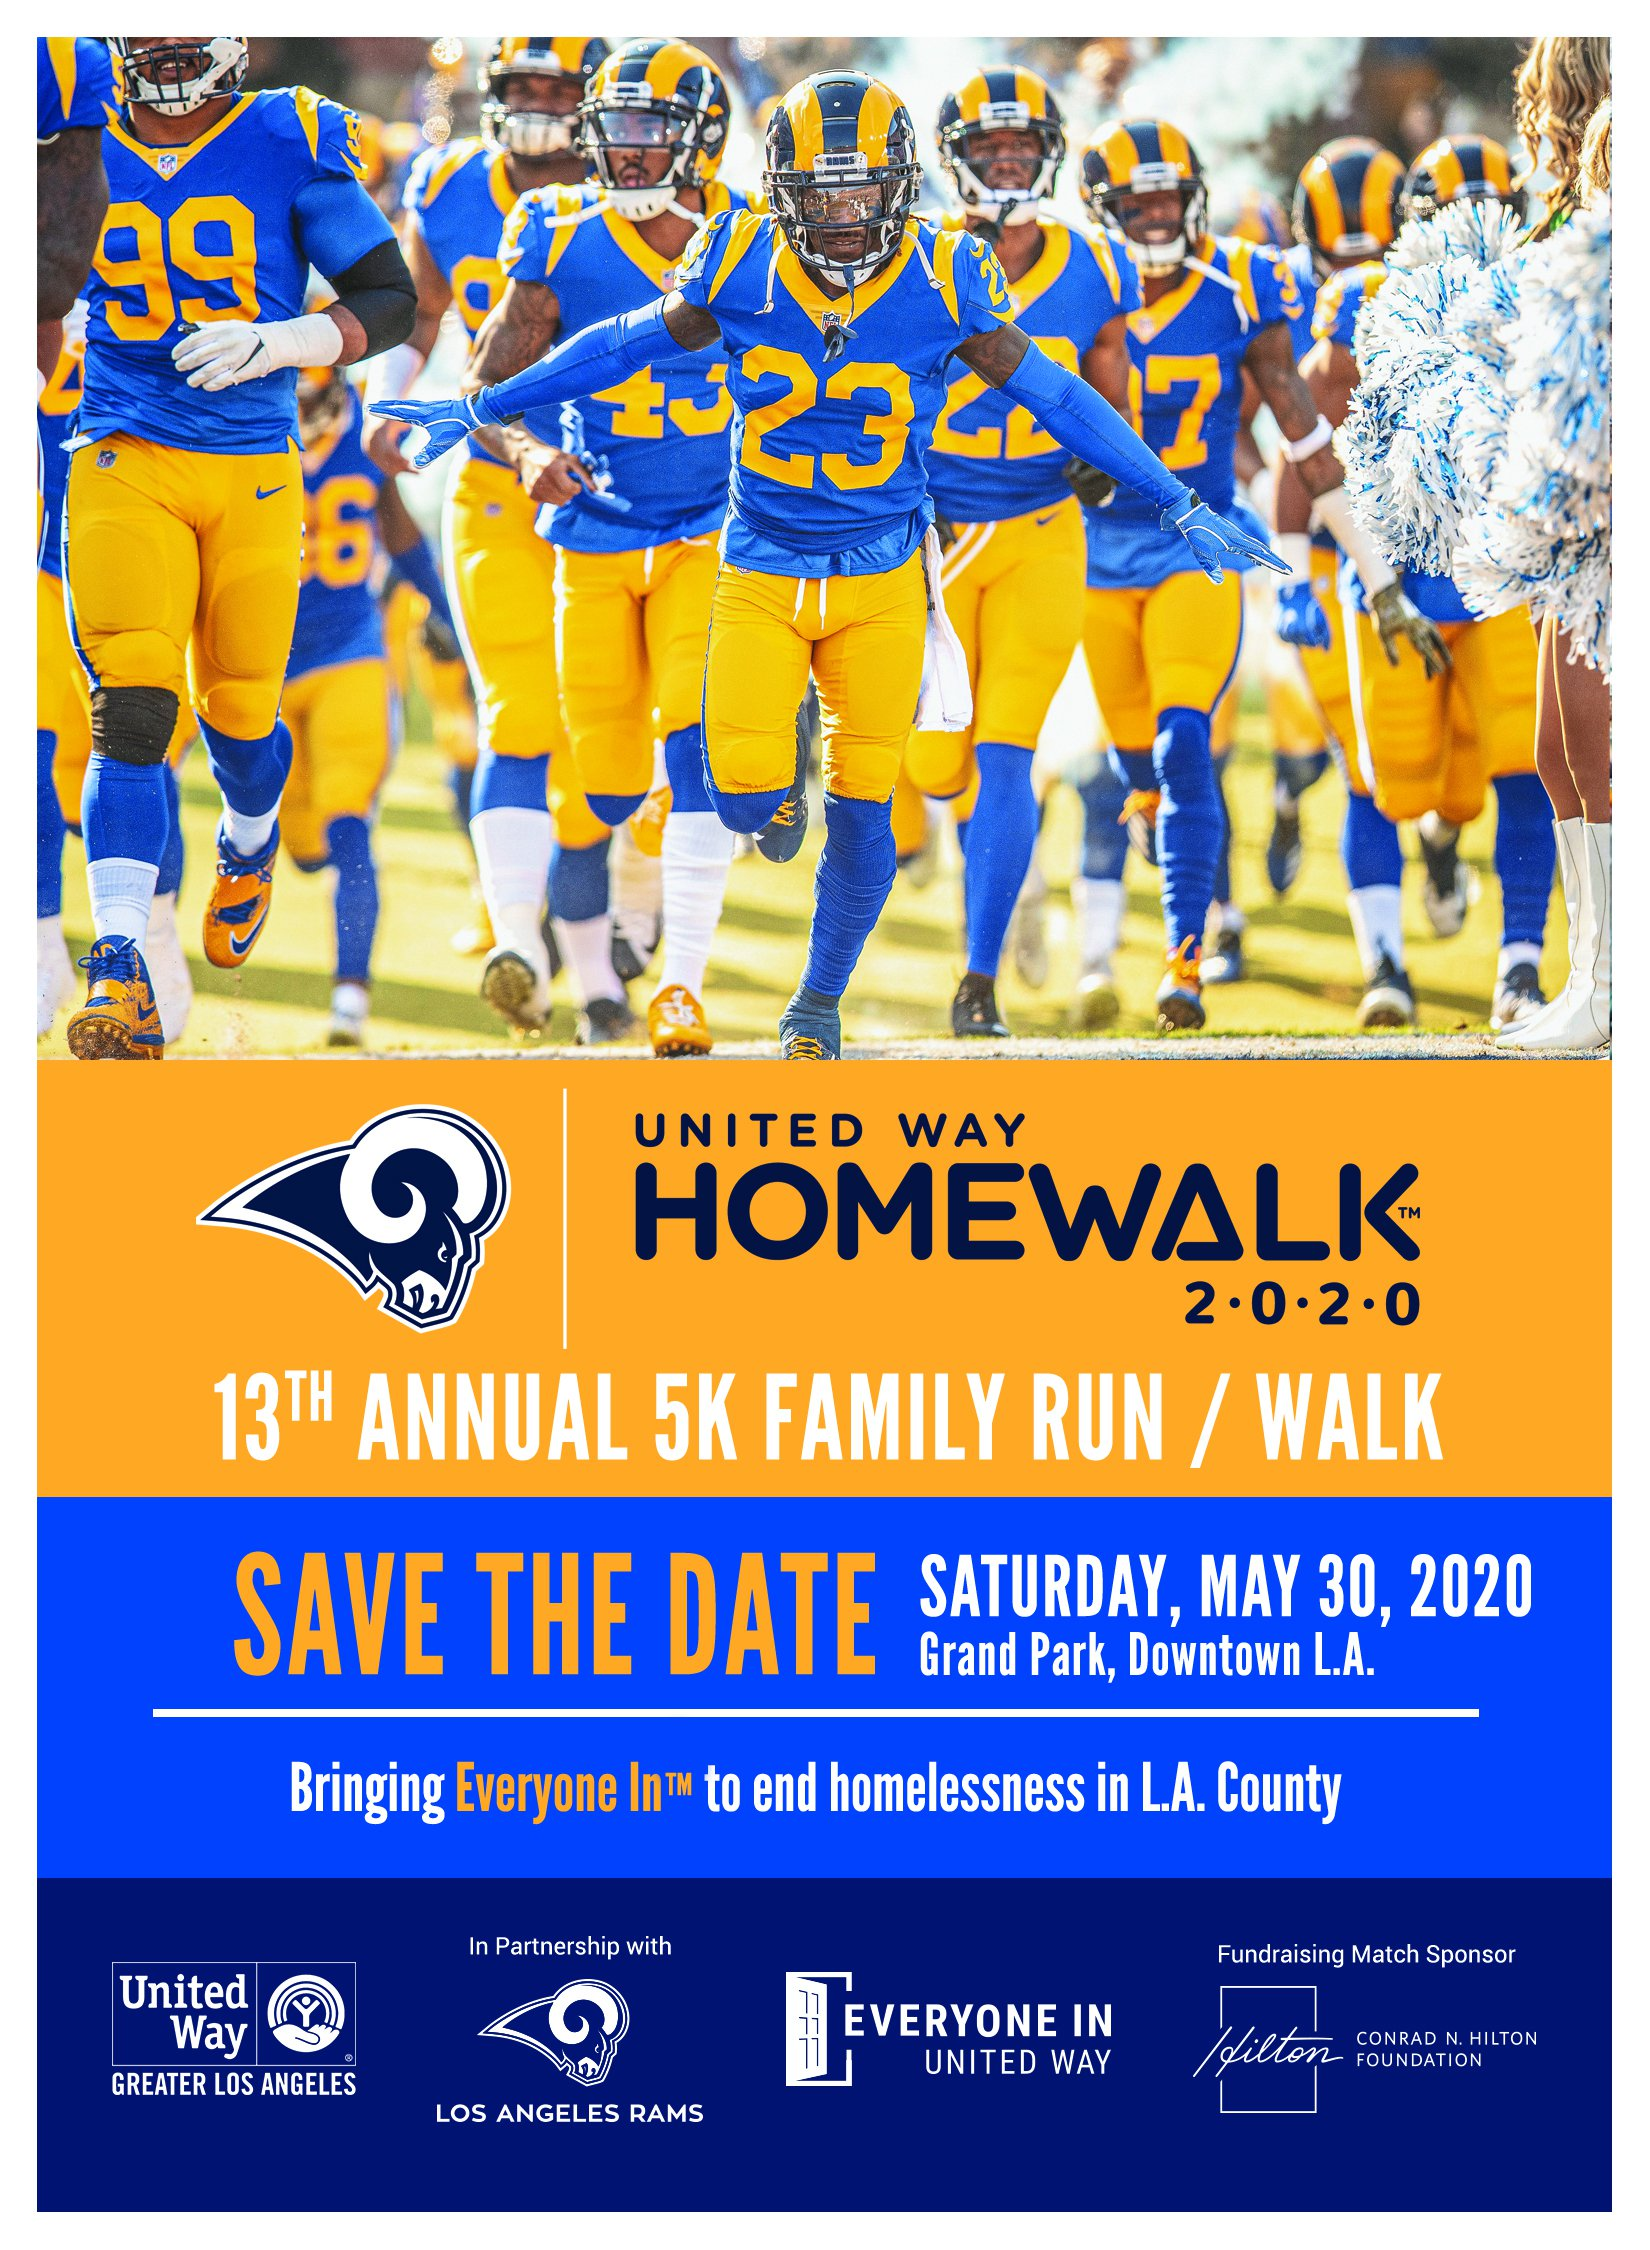 HomeWalk 2020 Save the Date Saturday, May 30th at Grand Park, Downtown Los Angeles